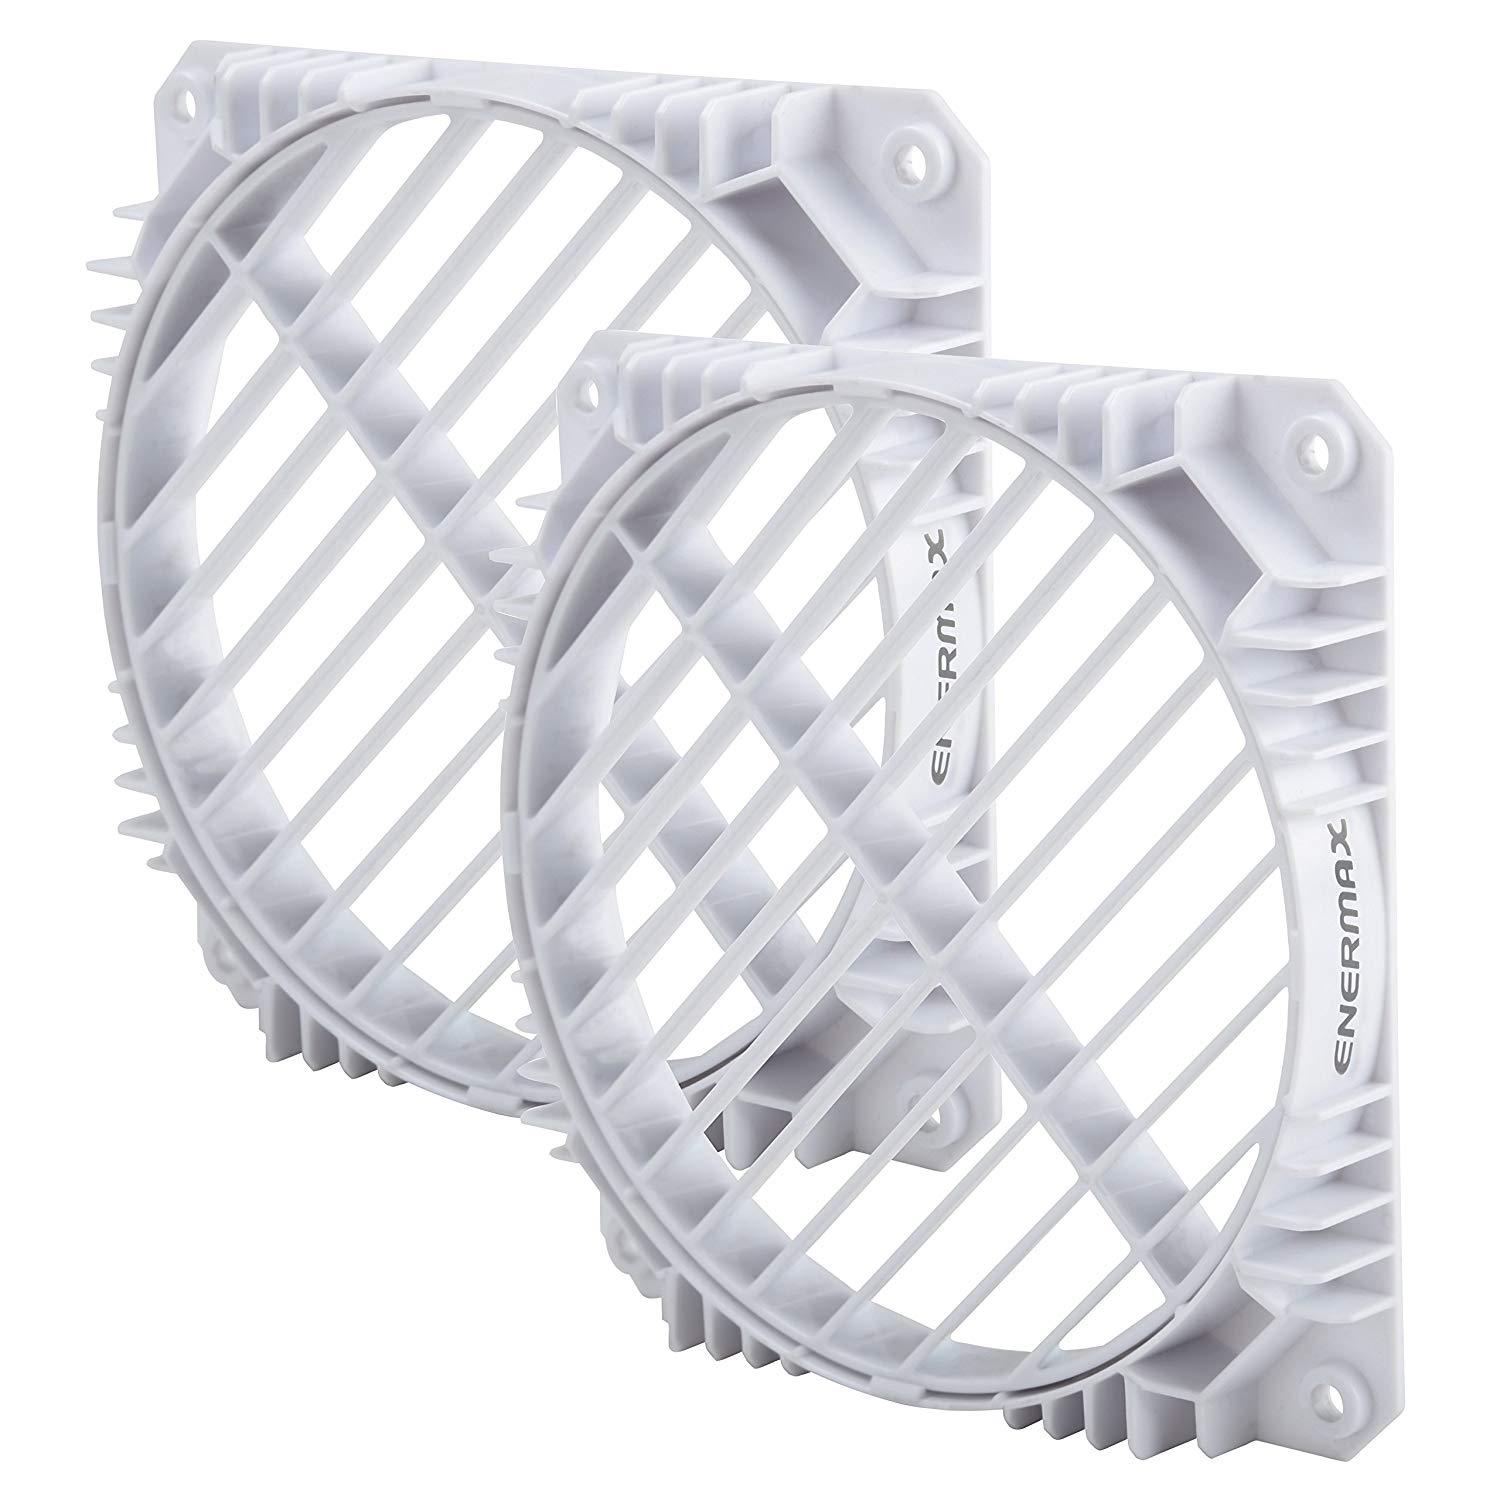 Enermax Air Guide 120mm, RGB - 2 Pack White